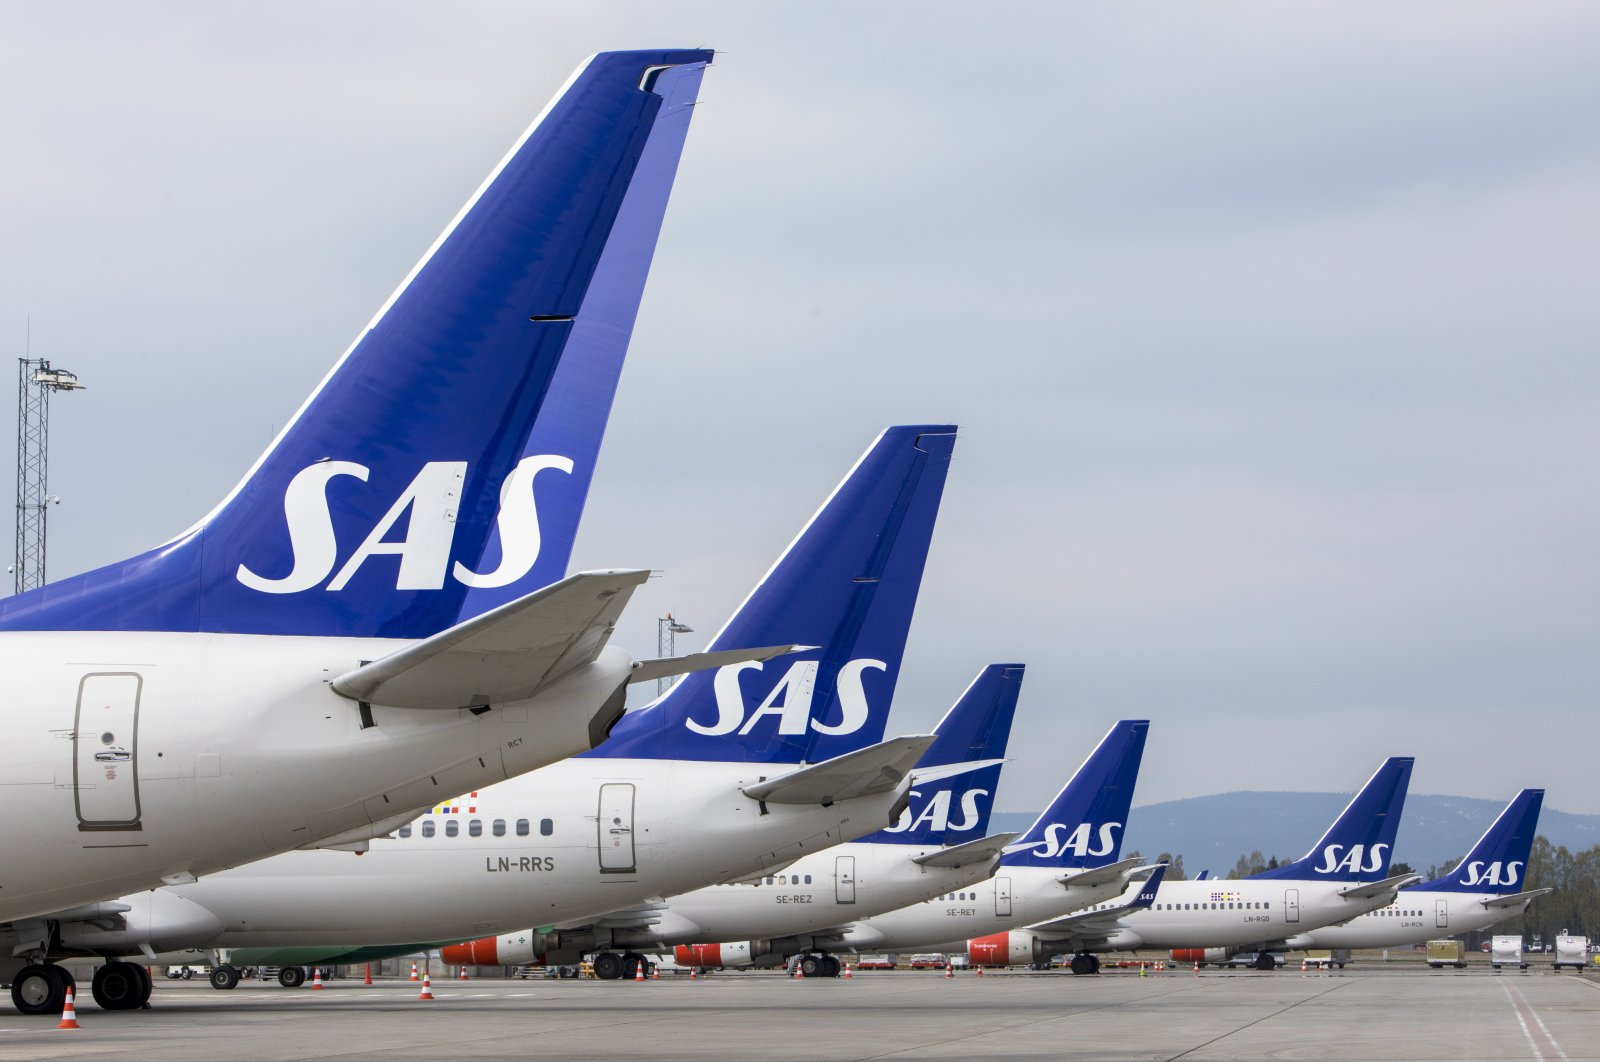 SAS planes are grounded at Oslo Gardermoen airport during pilots strikes, in Oslo, April 26, 2019 file photo. (NTB Scanpix via AP)